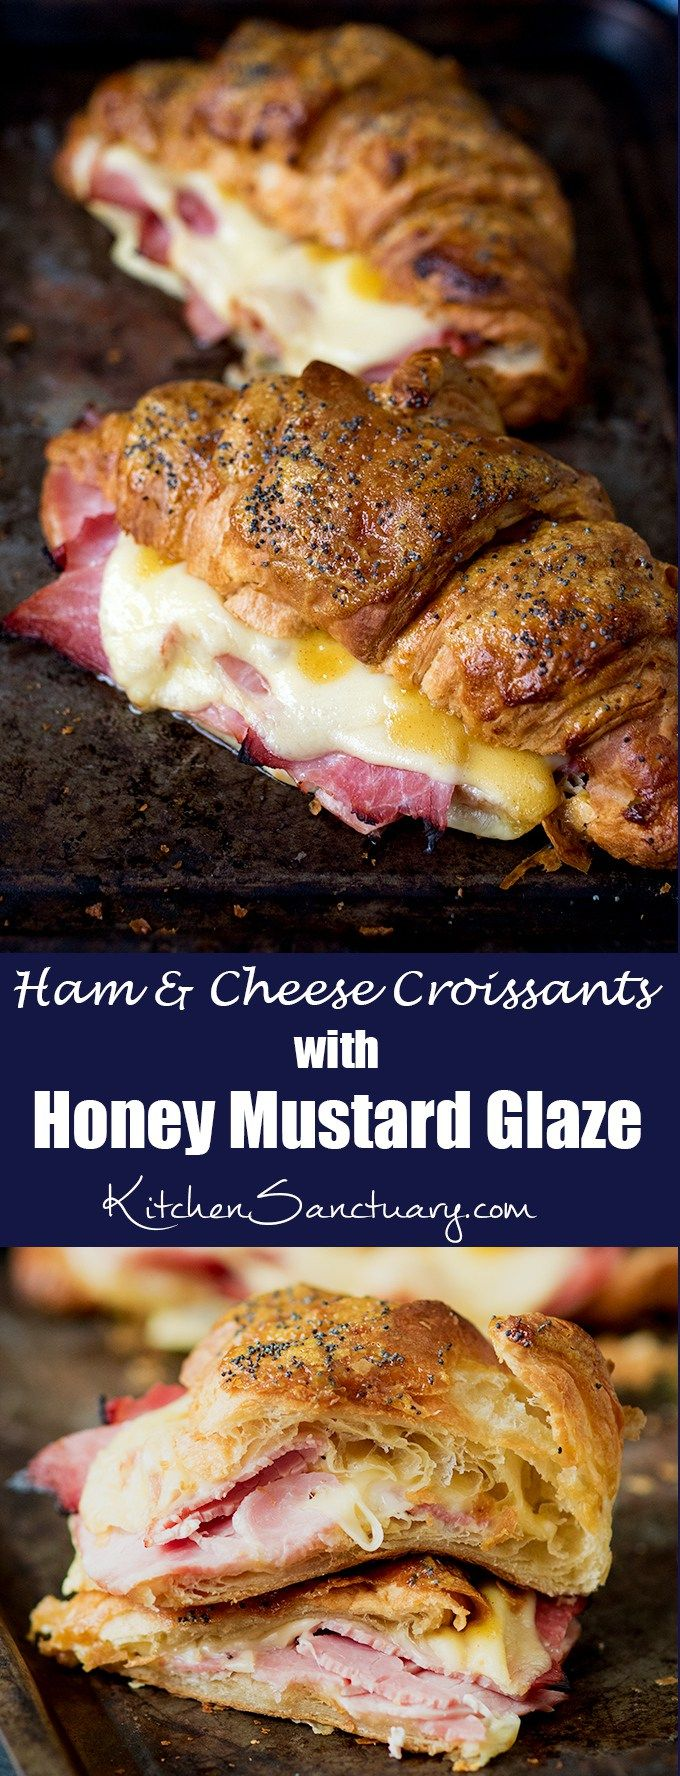 Ham and Cheese Croissant with Honey Mustard Glaze - a simple but delicious Mother's Day Breakfast